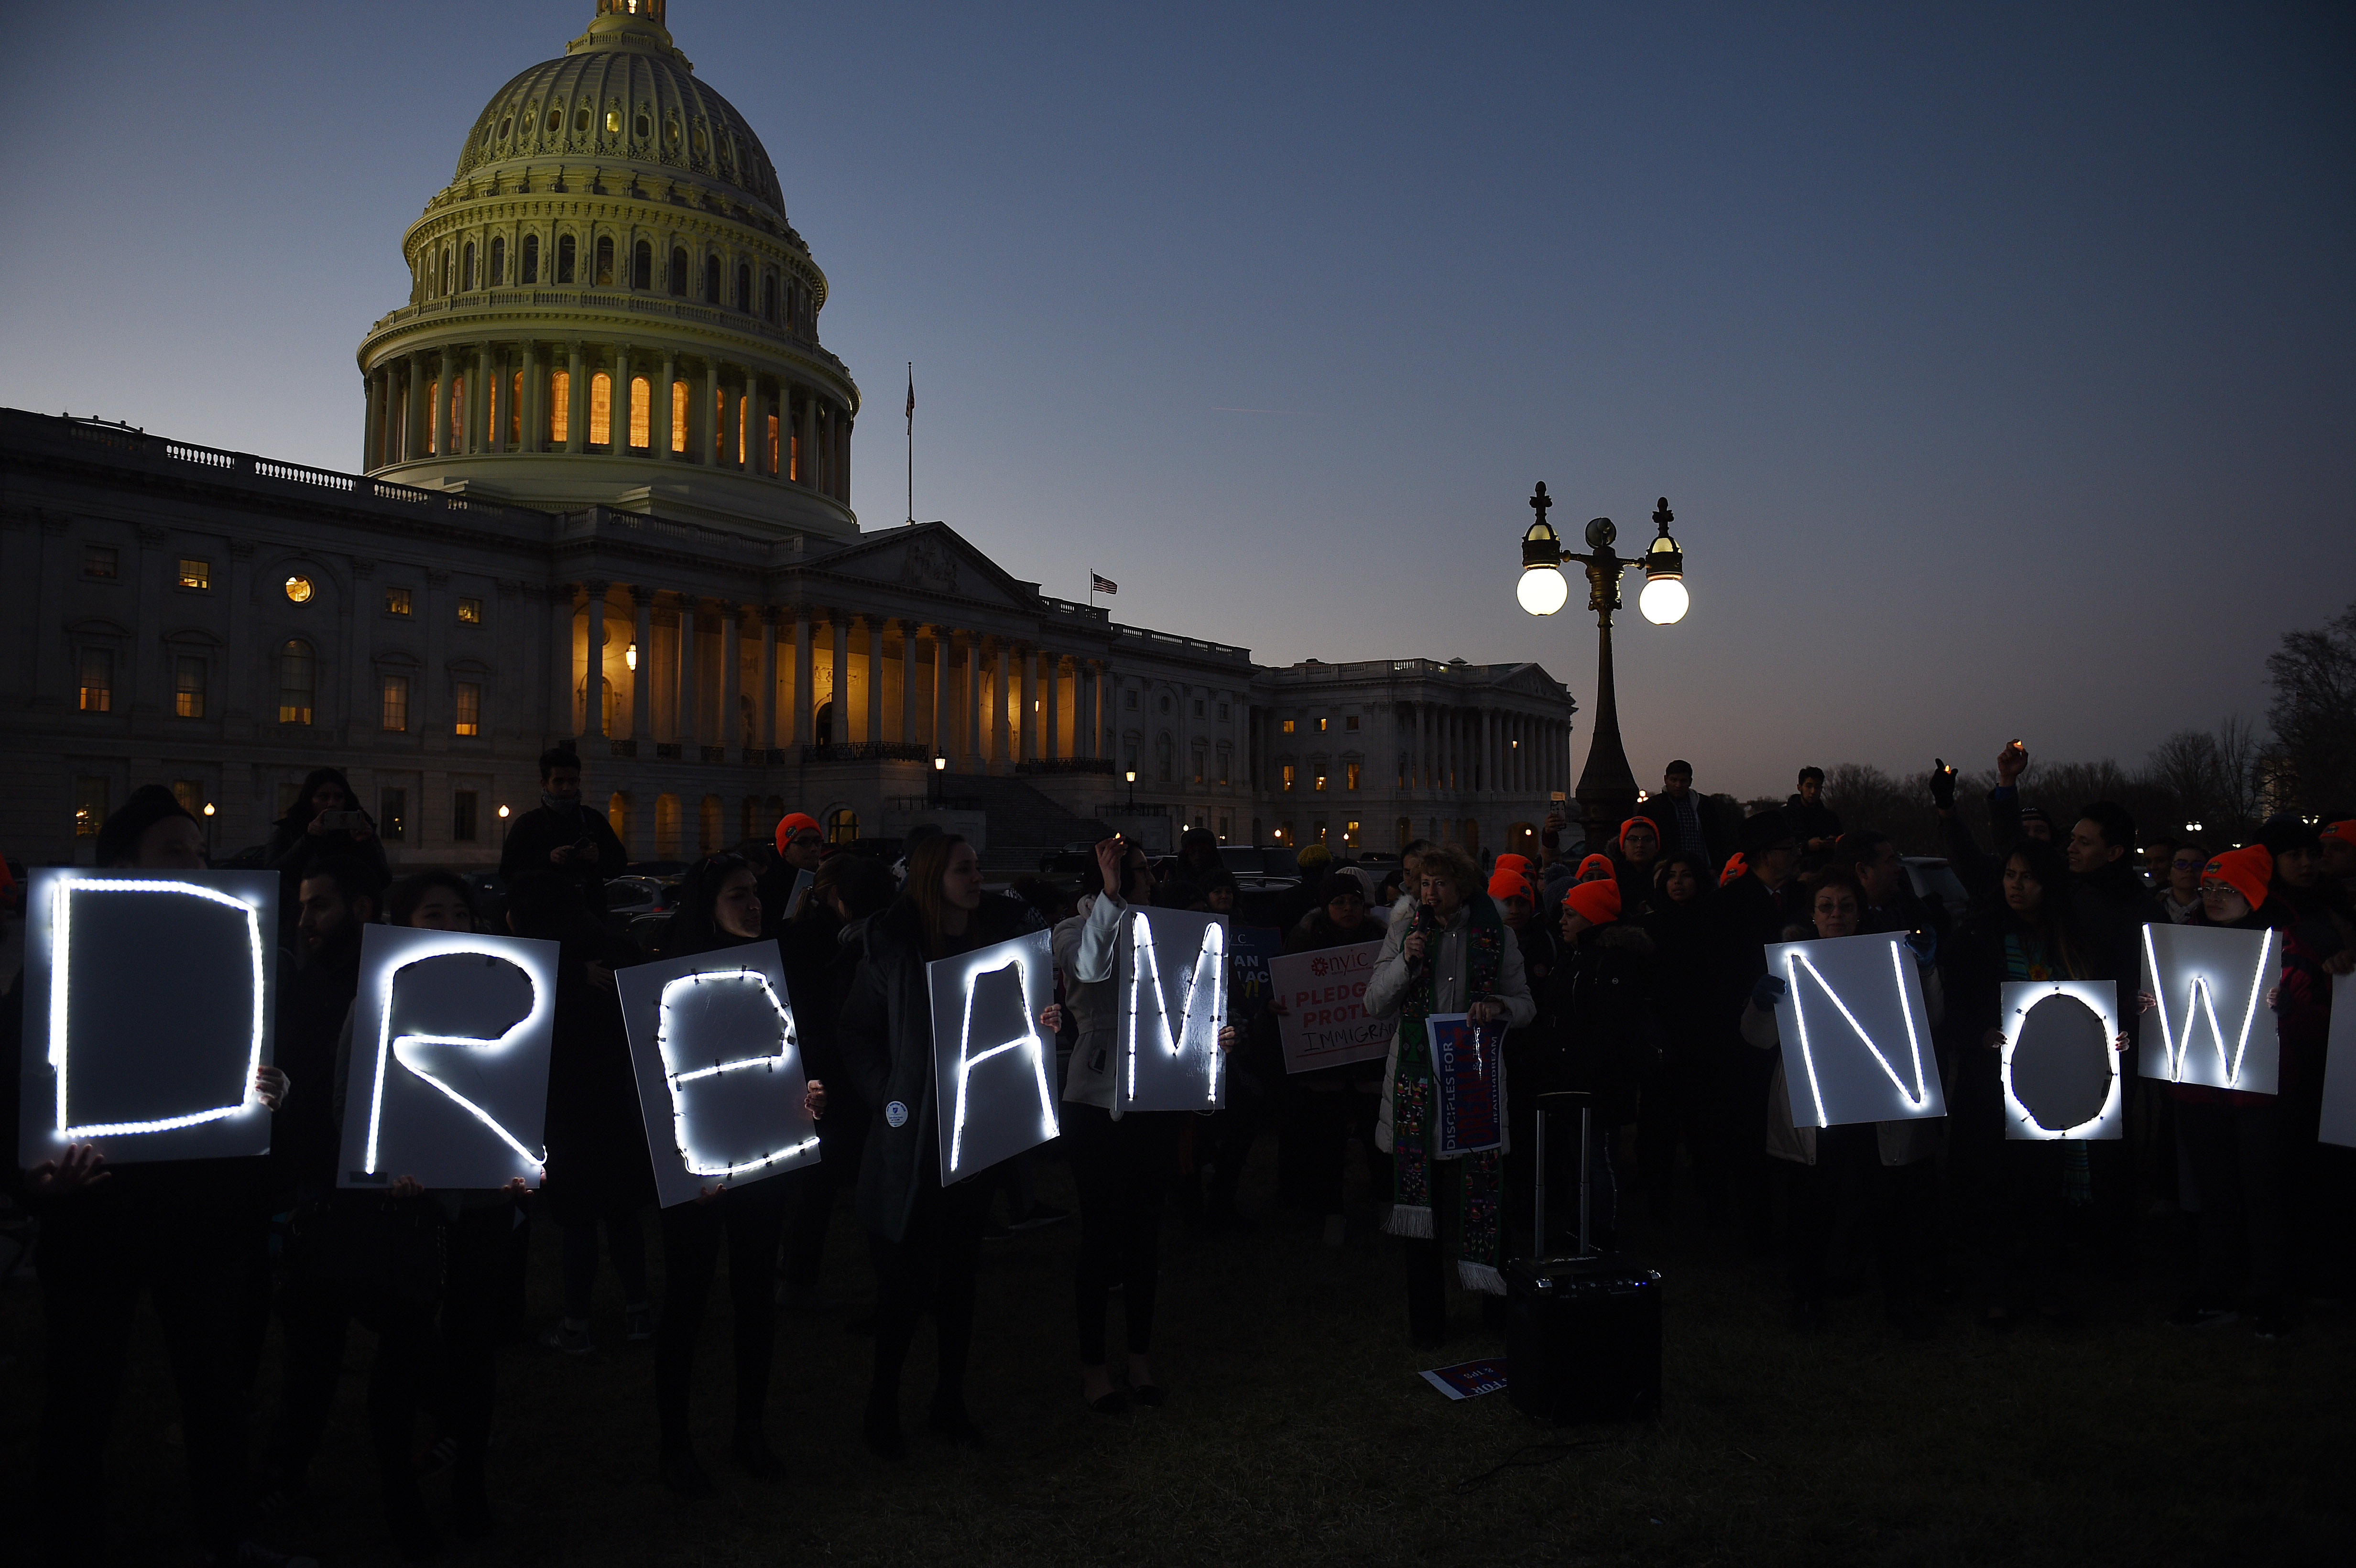 Dreamers protest outside the U.S. Capitol while lawmakers struggle to avoid an impending government shutdown on Jan. 18, 2018. Democrats threatened with a shutdown as long as no clean DREAM act solutions is made.